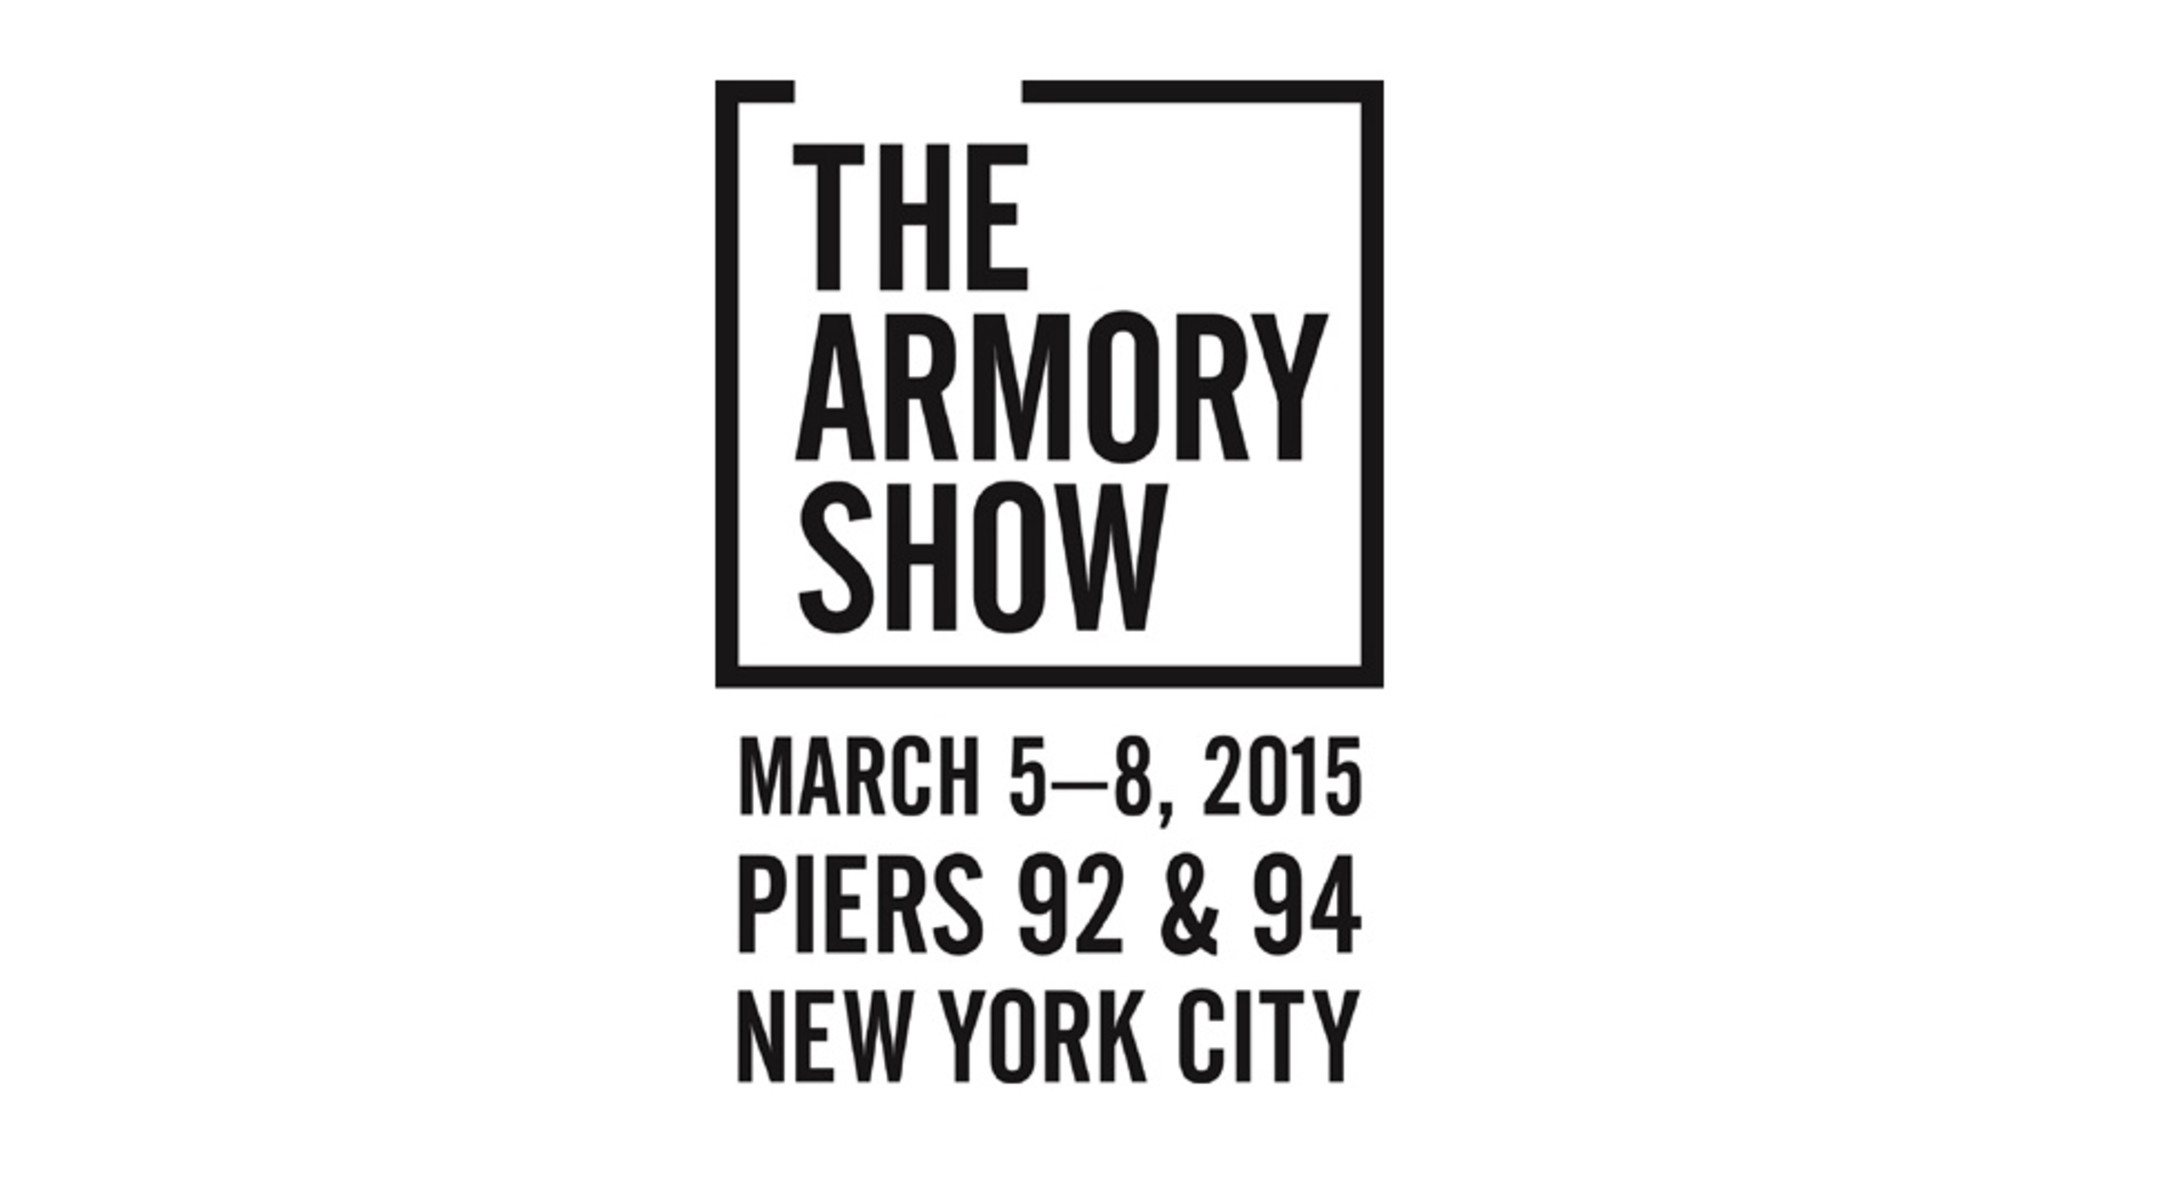 The Armory Show NYC logo